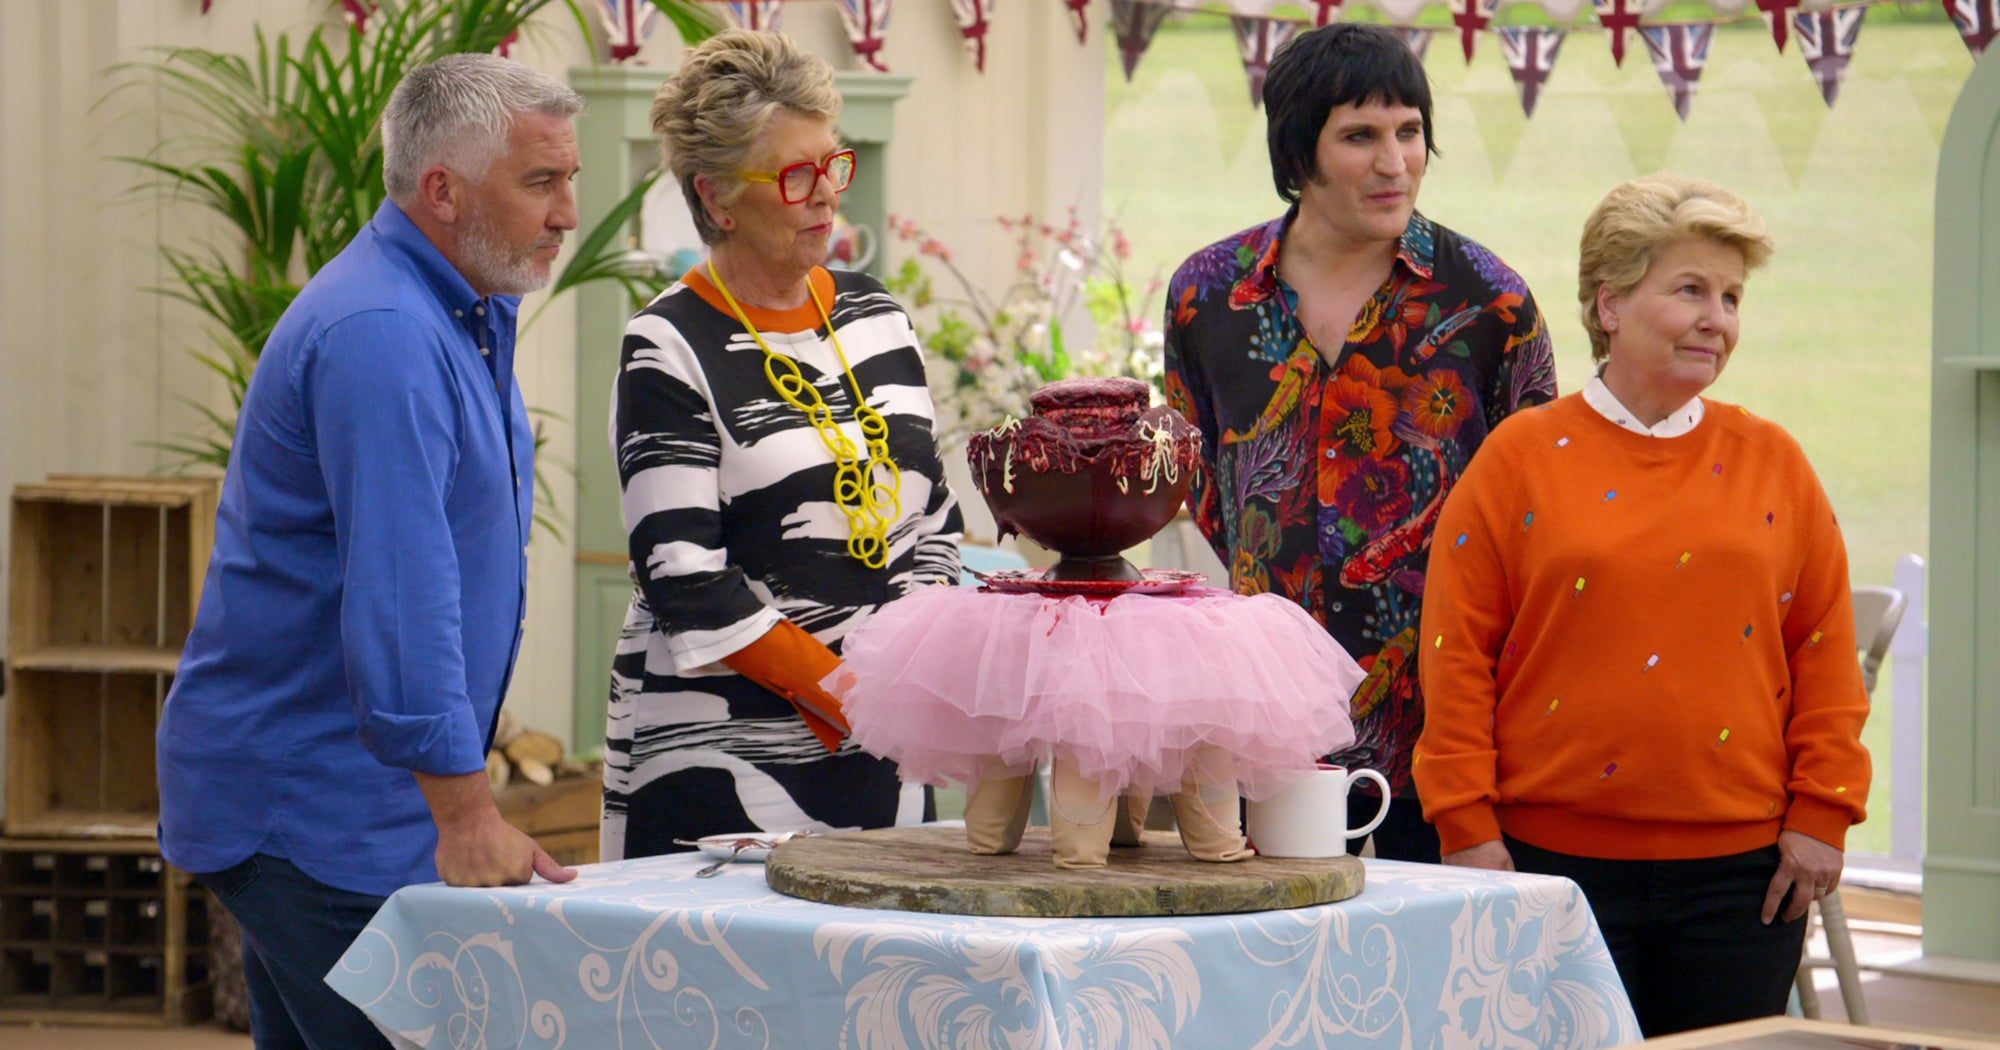 The Great British Bake Off New Season Announcement